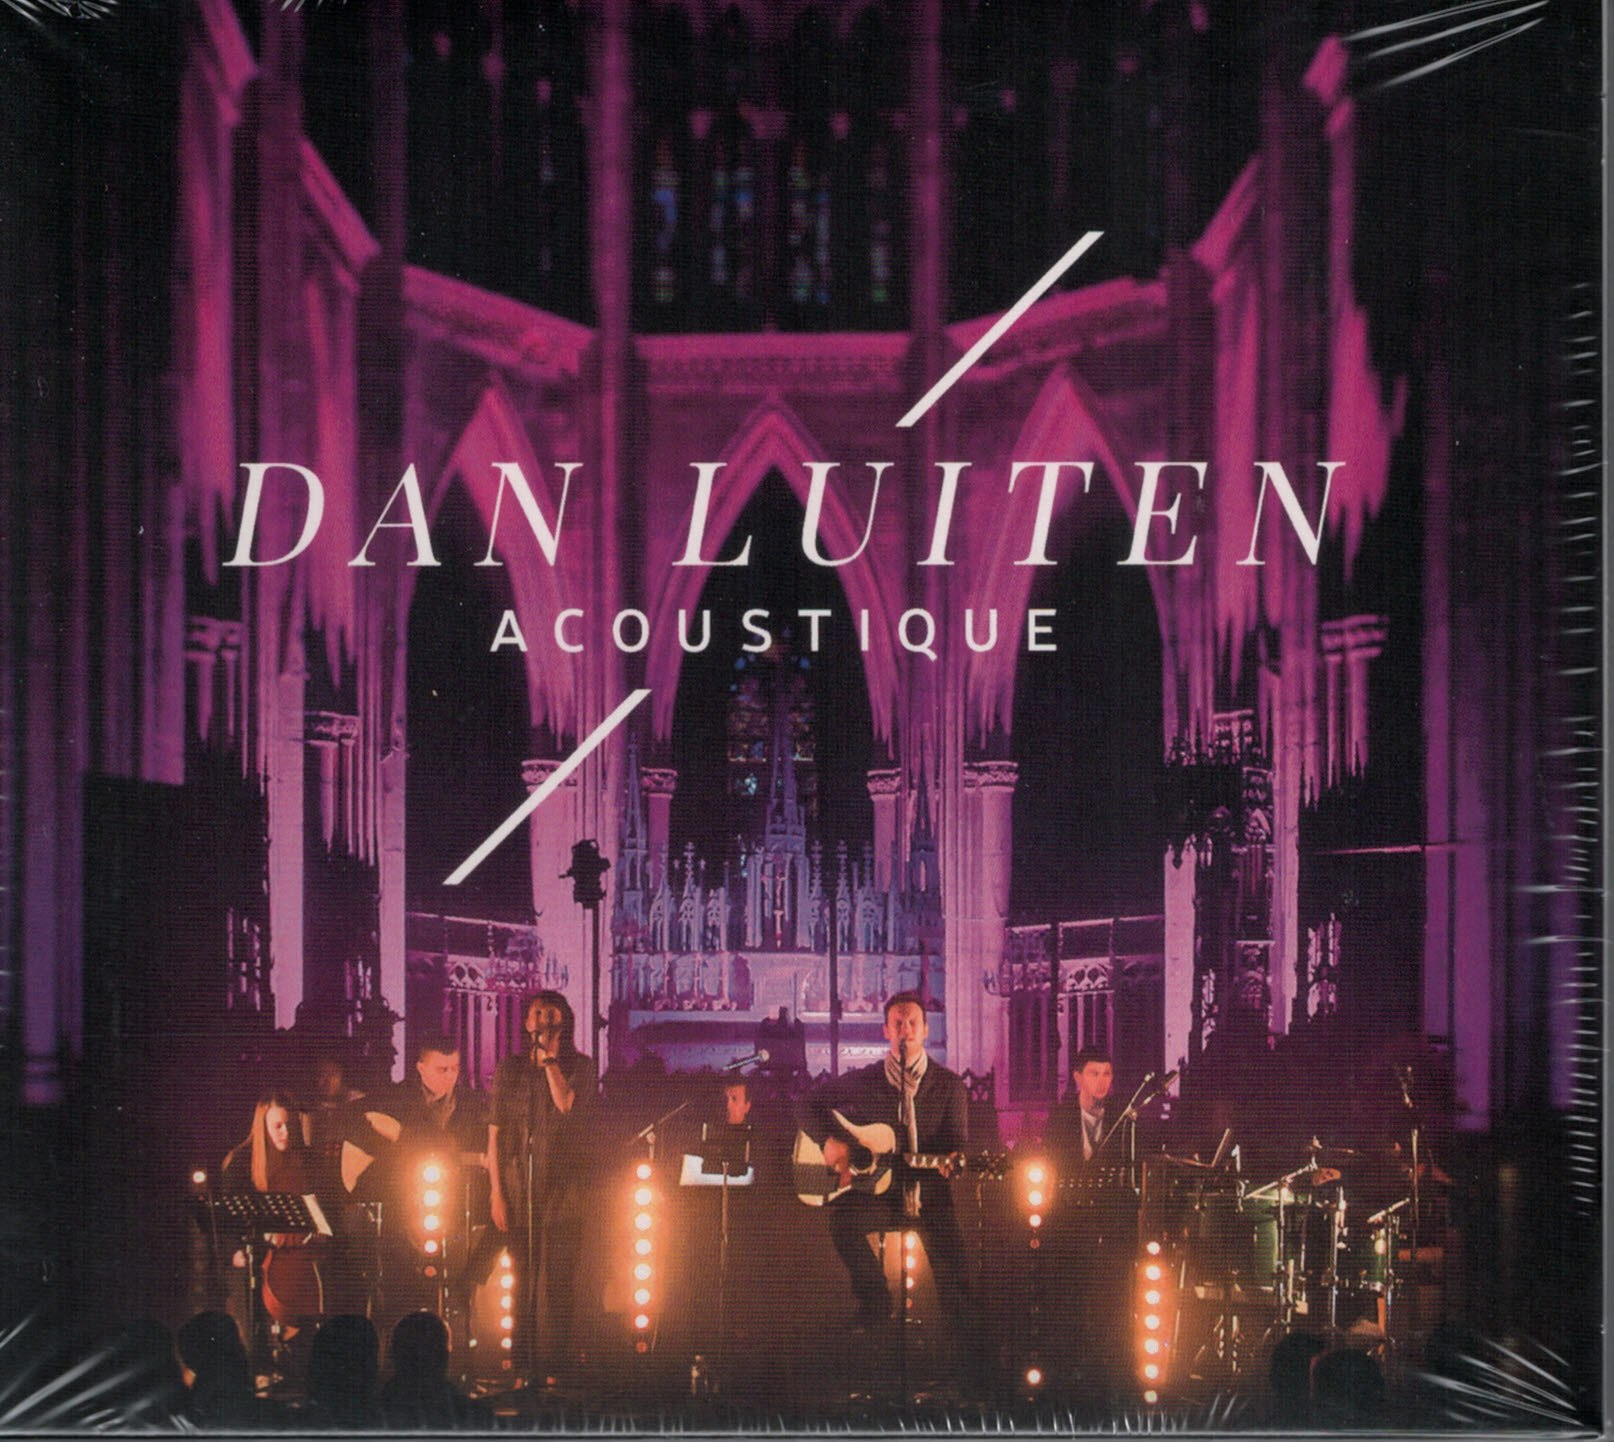 CD Dan Luiten Acoustique